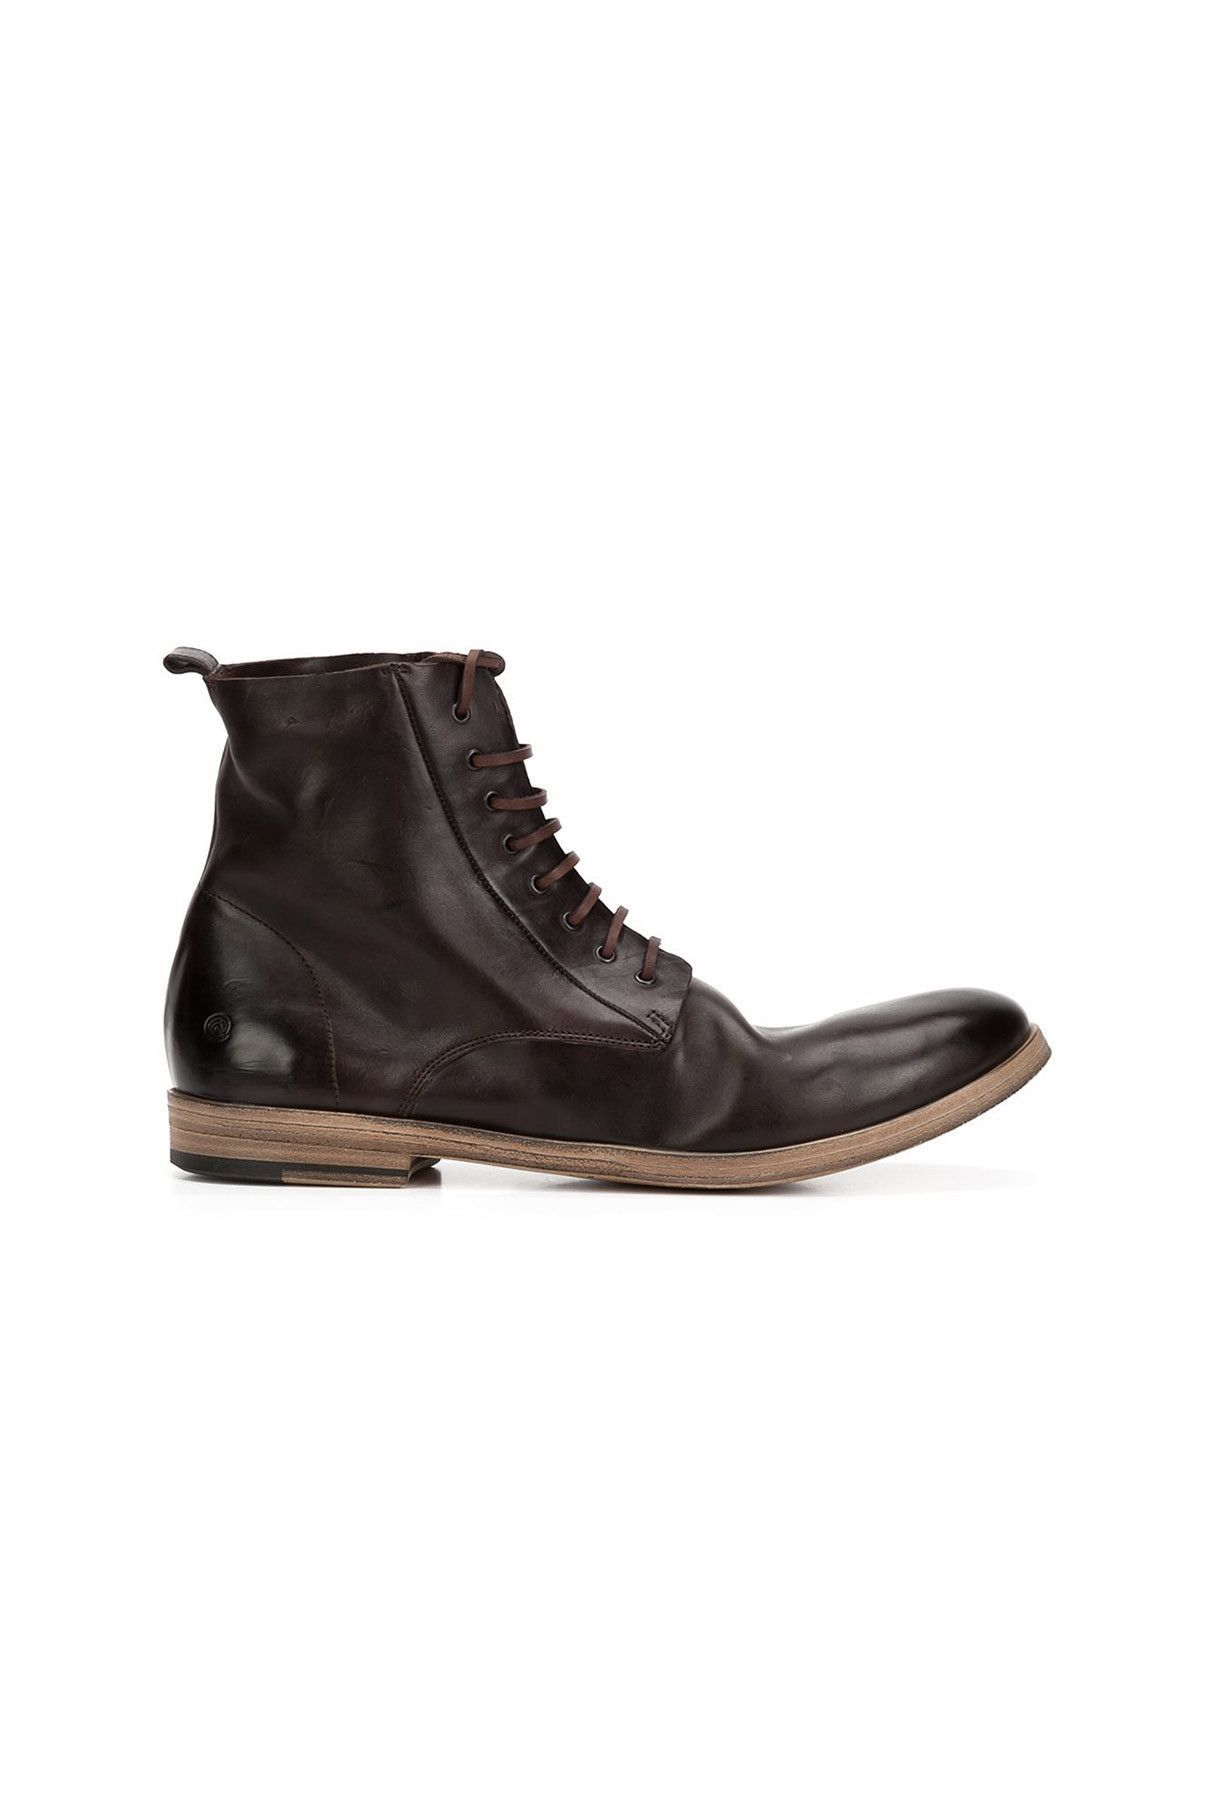 30049cf5363 Marsell / 02 shoe / 05 boot / 01 ankle} MM1426 Lista Boots   Products